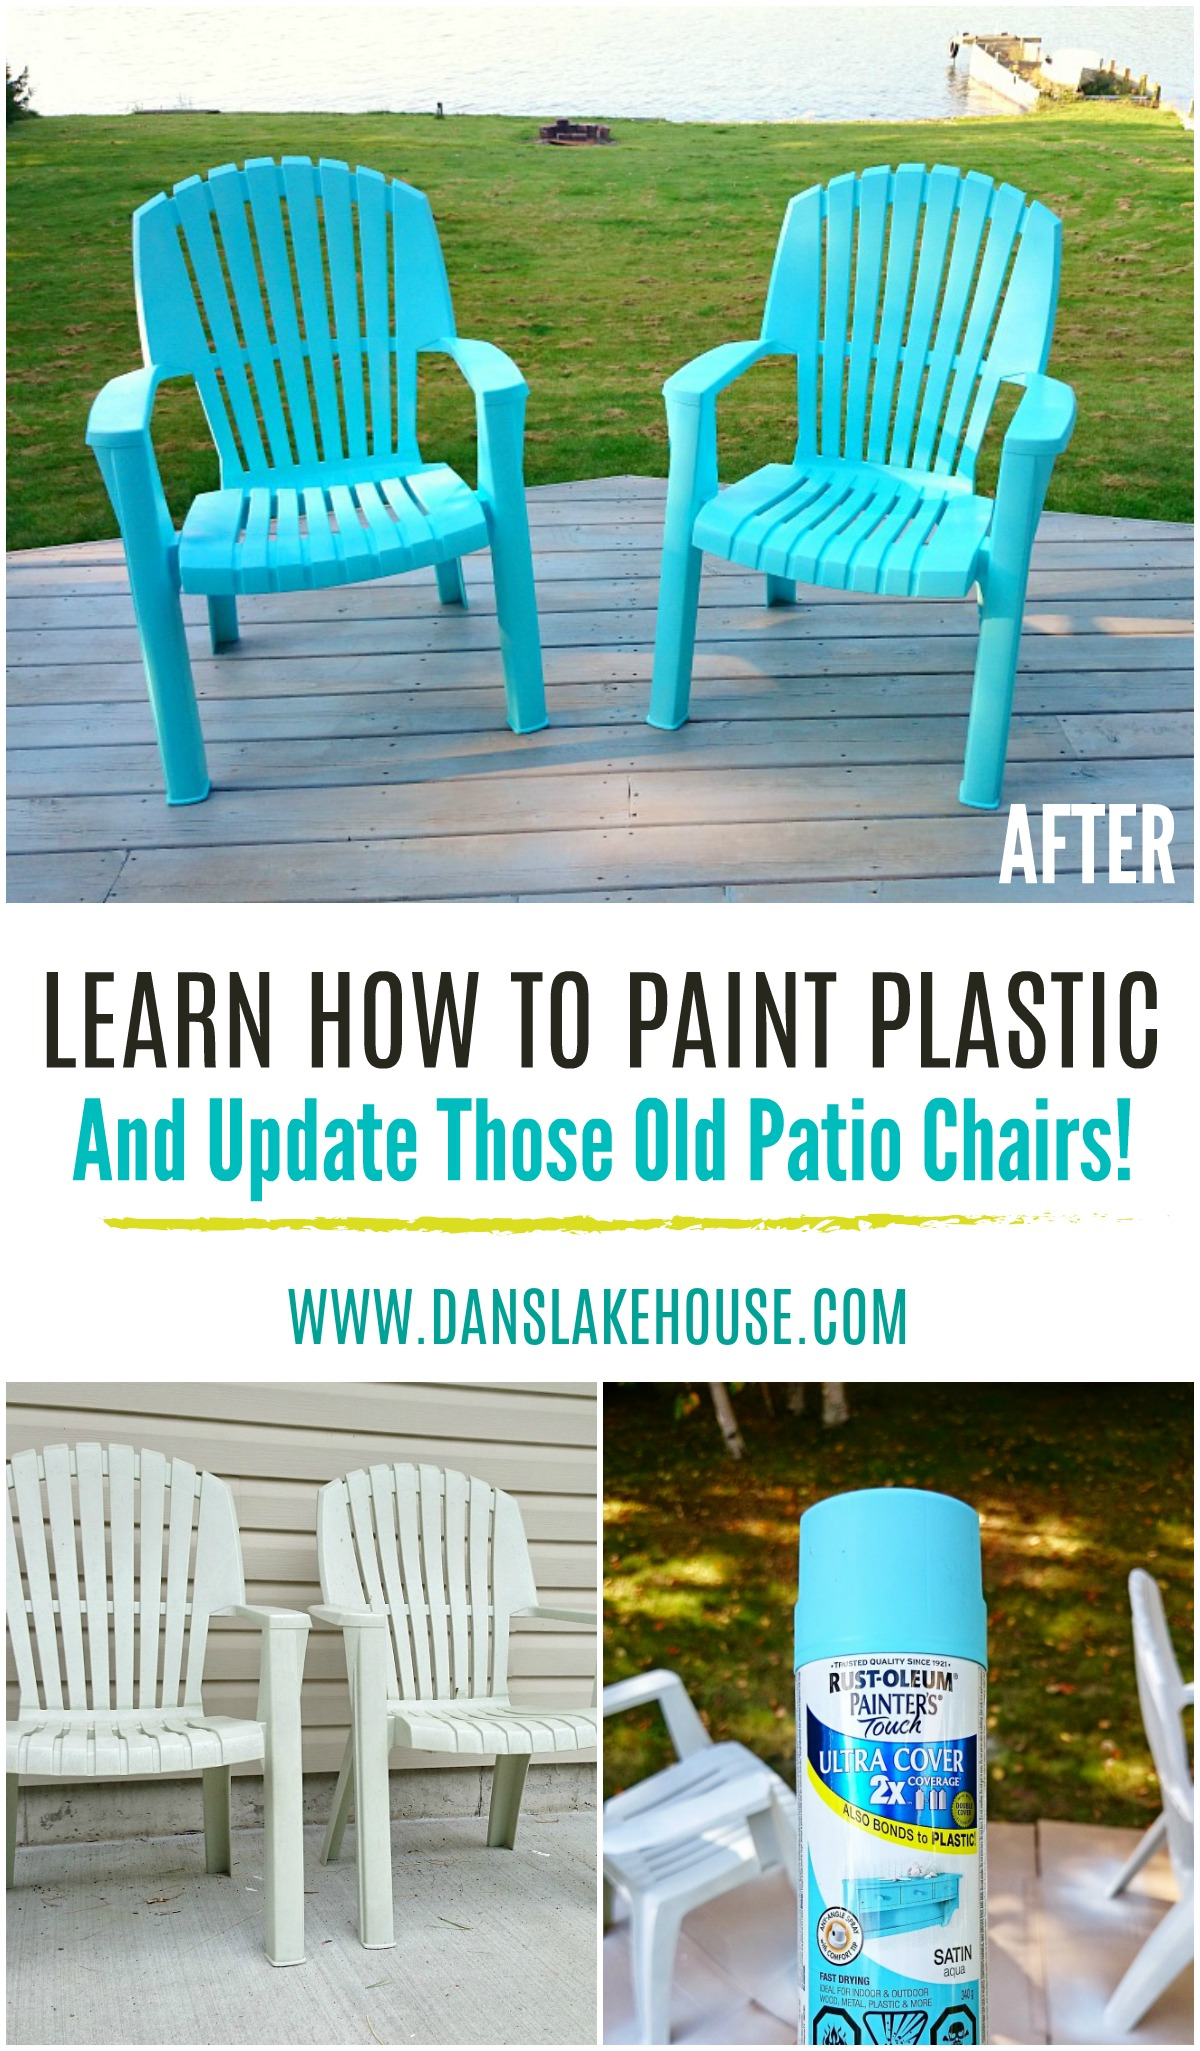 18 Outdoor DIY Projects